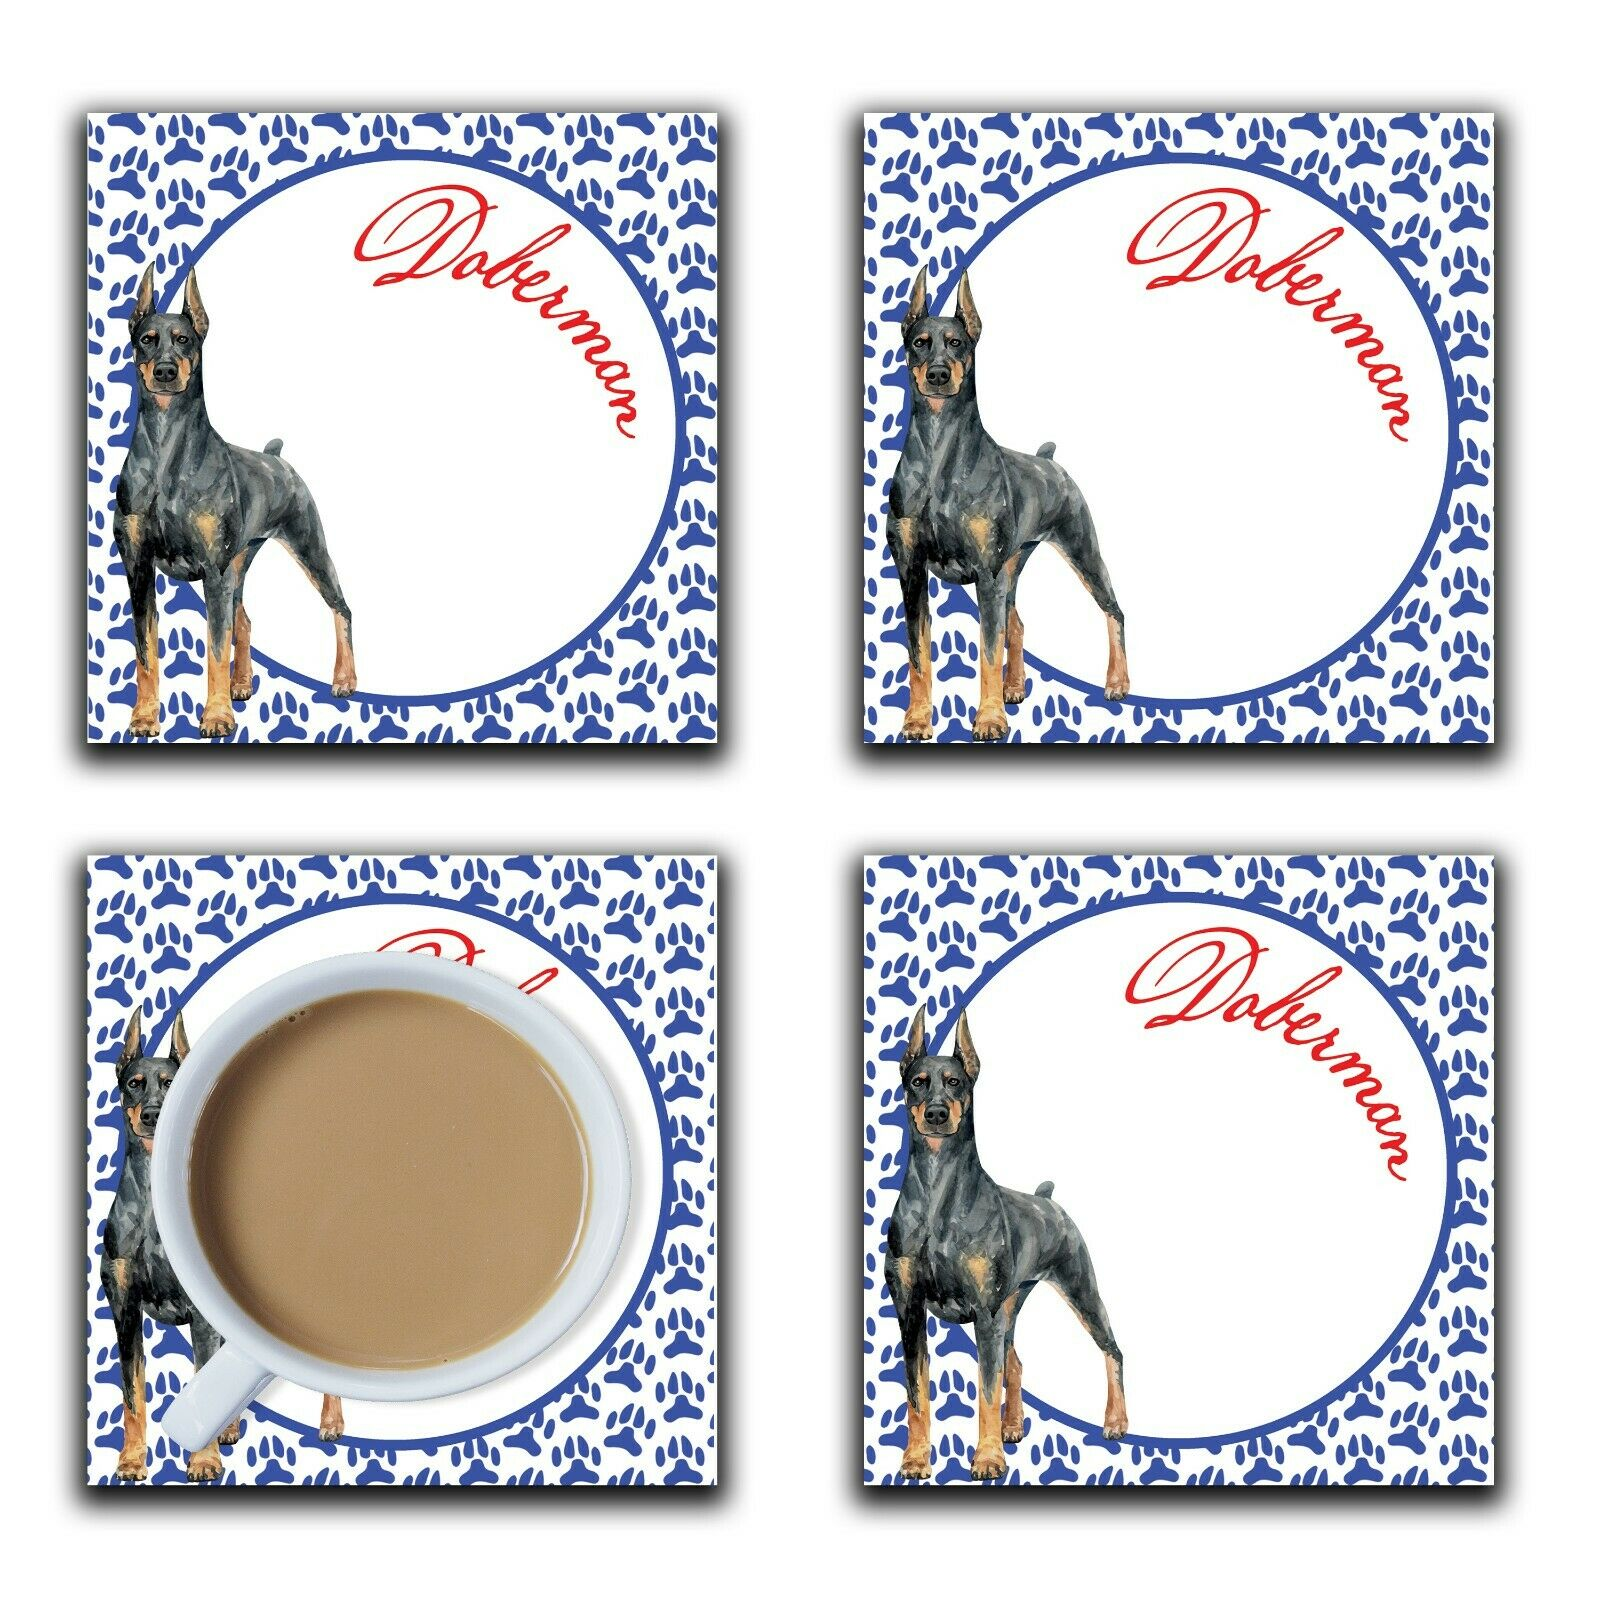 Embossi Printed Doberman, wood or ceramic tile, set of 4 Dog Coasters